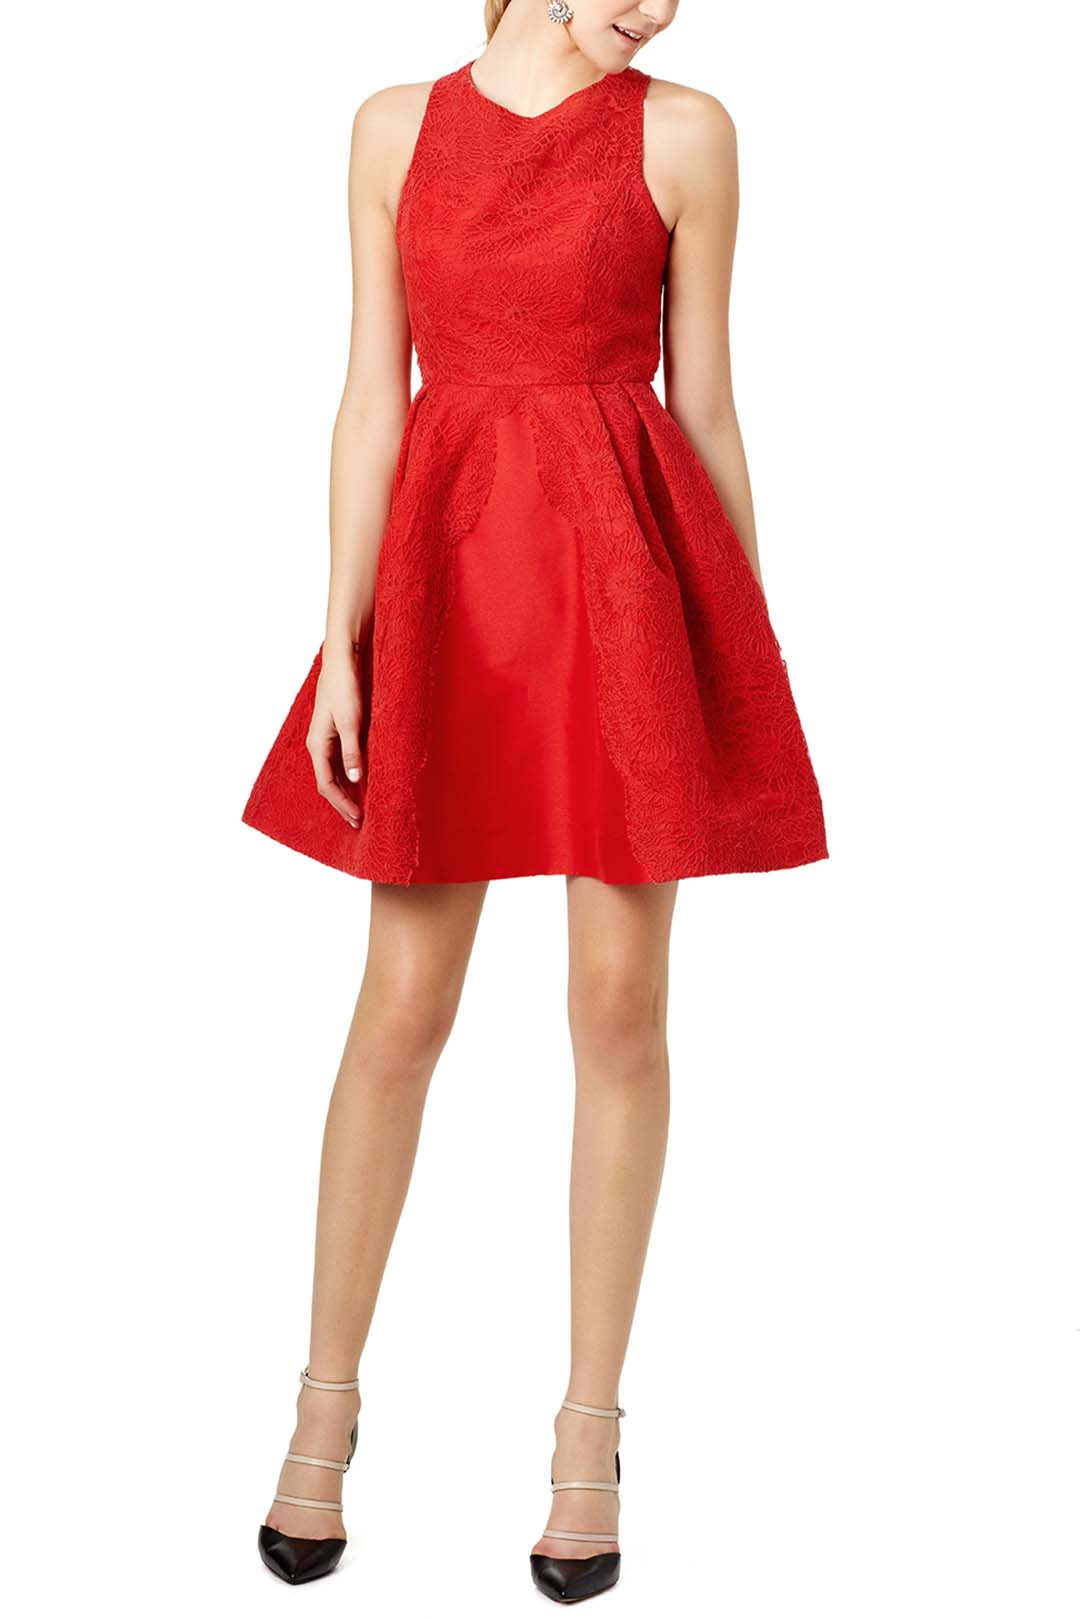 monique lhuillier red mark dress